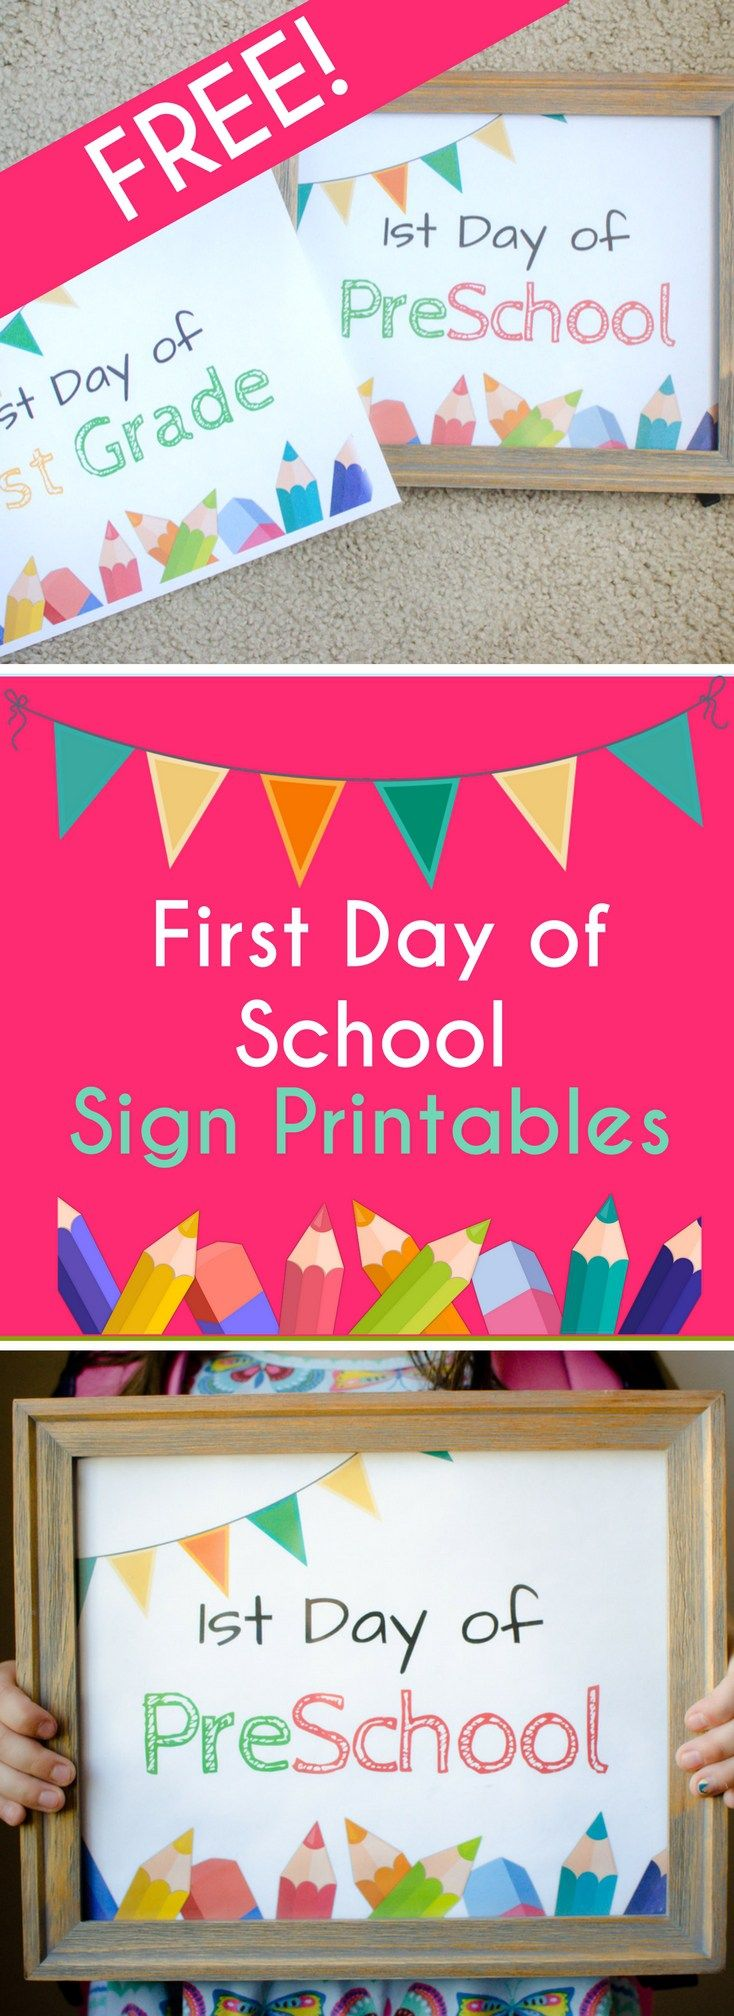 "The first day of school is a great time to create milestones and memories. First day of school activities can include a special breakfast, new morning routines and the ever famous ""first day of school"" photo. Why not make this activity fun by printing and framing these First Day of School[Read more]"